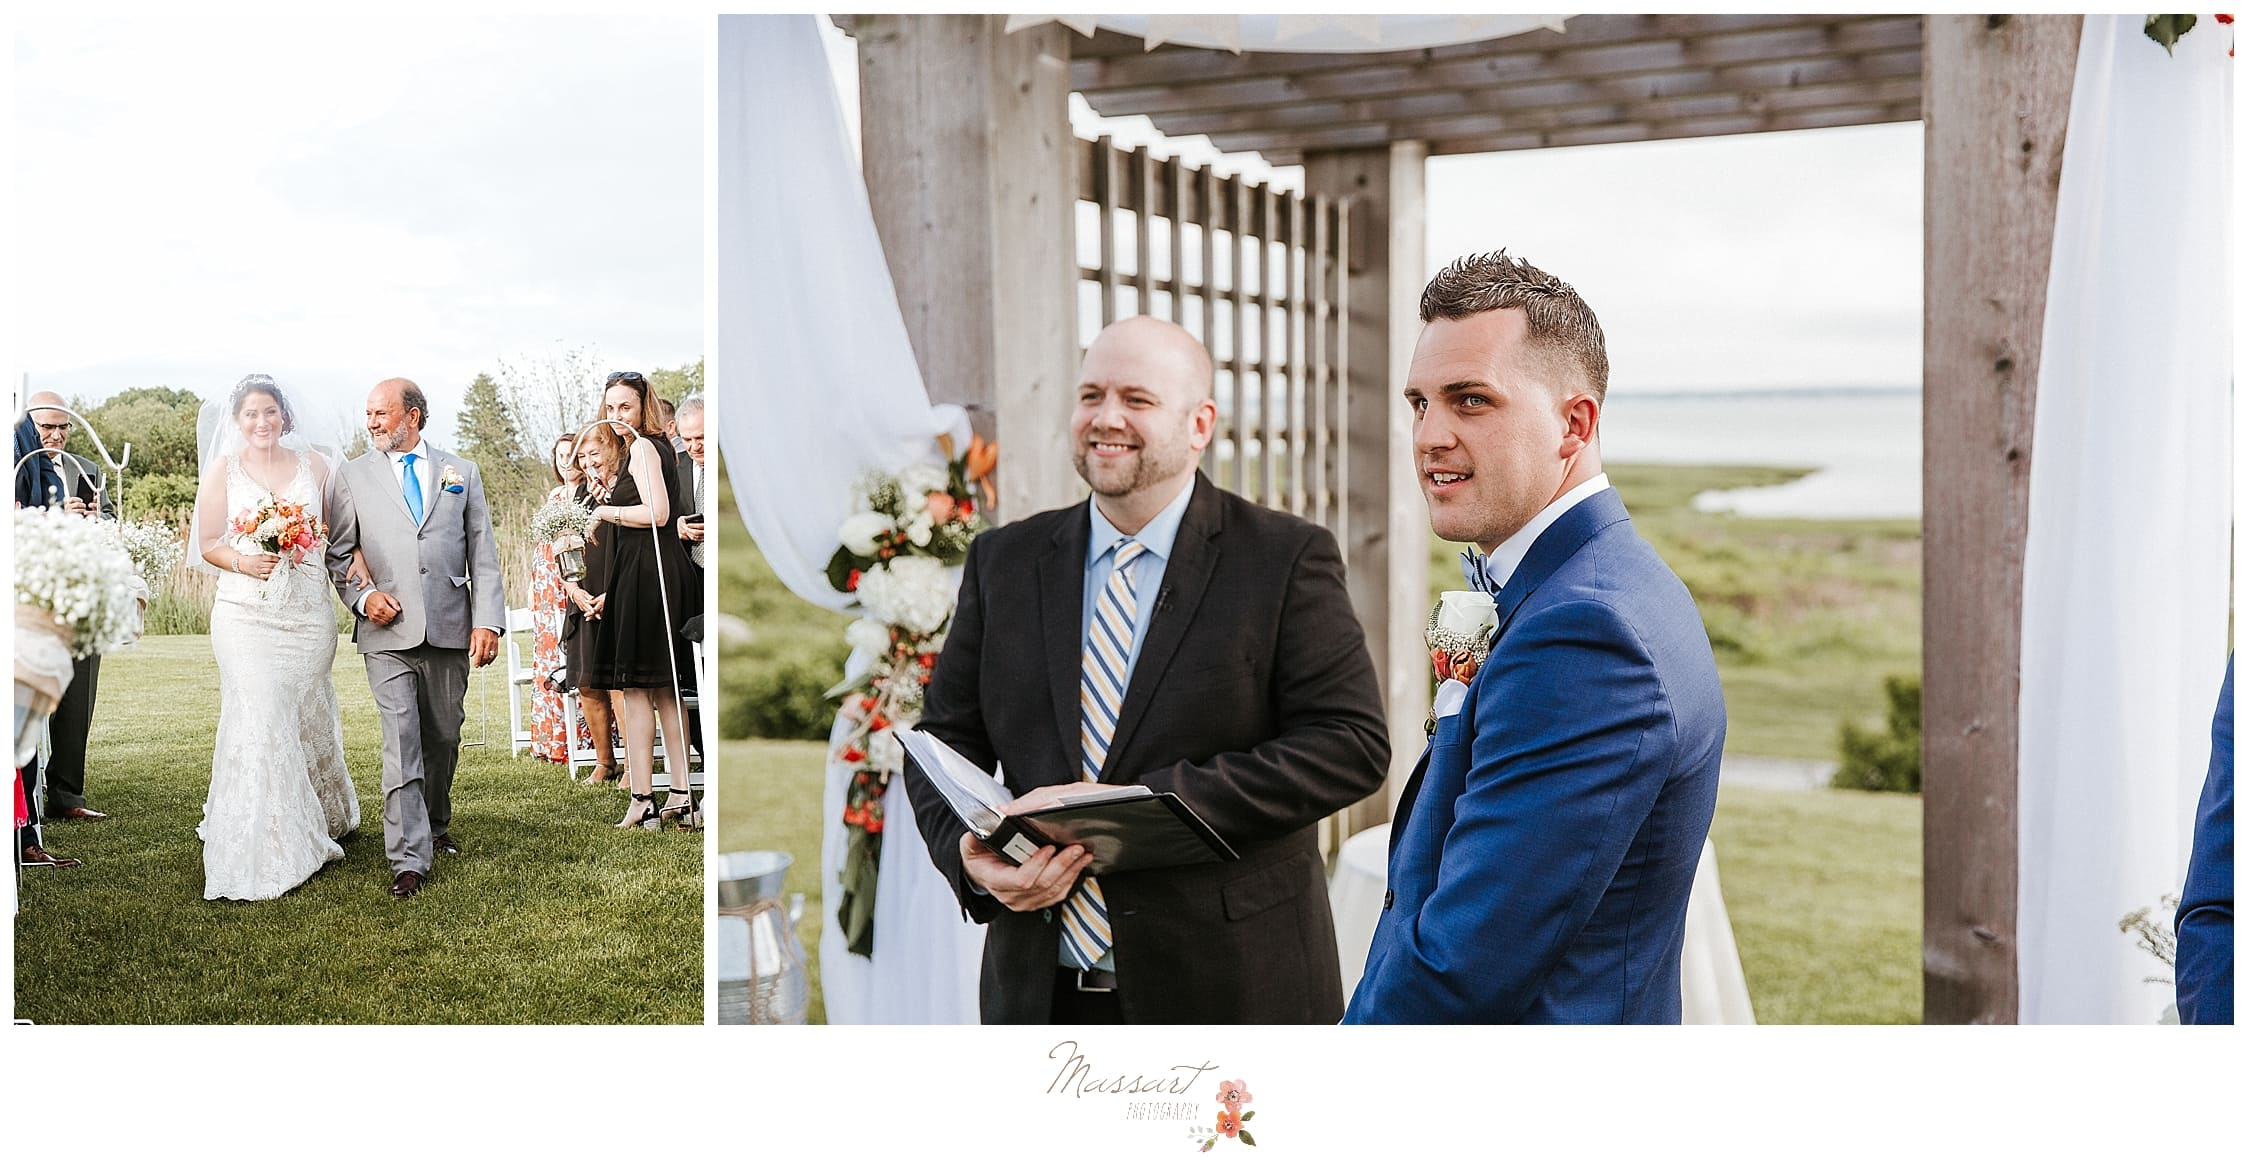 Groom waiting for bride to come down the aisle at Harbor Lights wedding photographed by Massart Photography, RI wedding photographer.